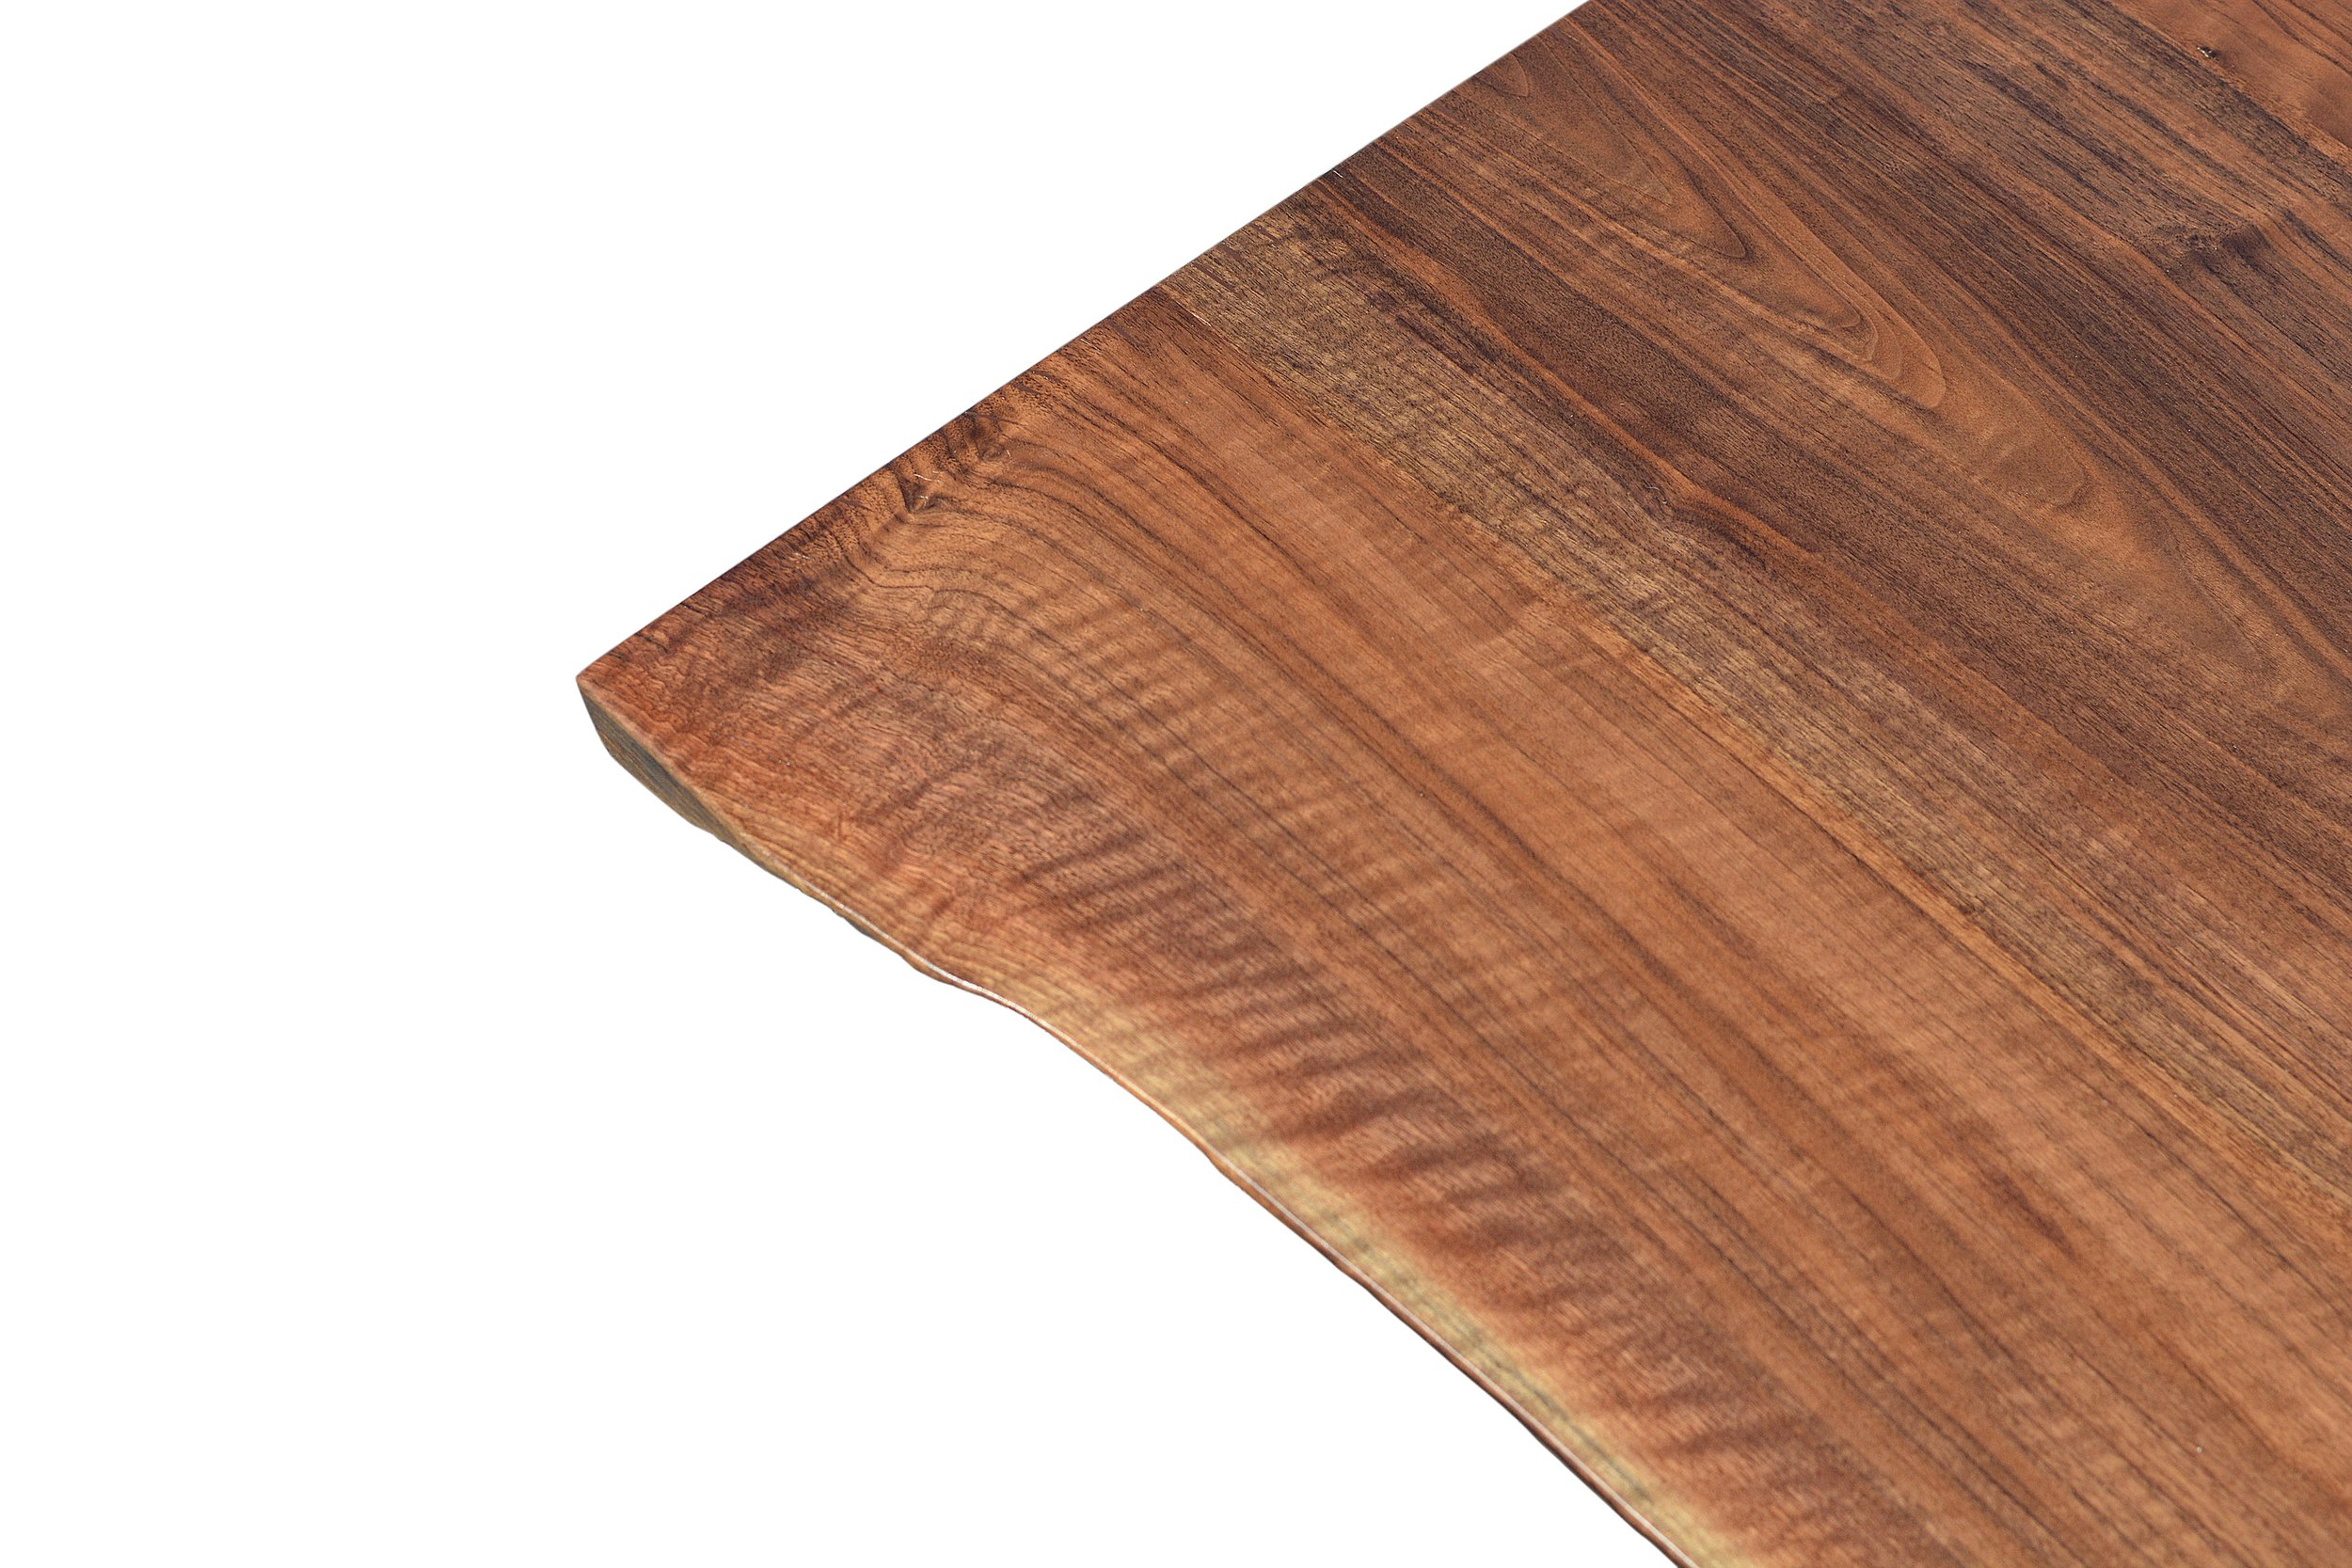 Etz & Steel Iris Live Edge Walnut Coffee Table Close Up 3.JPG